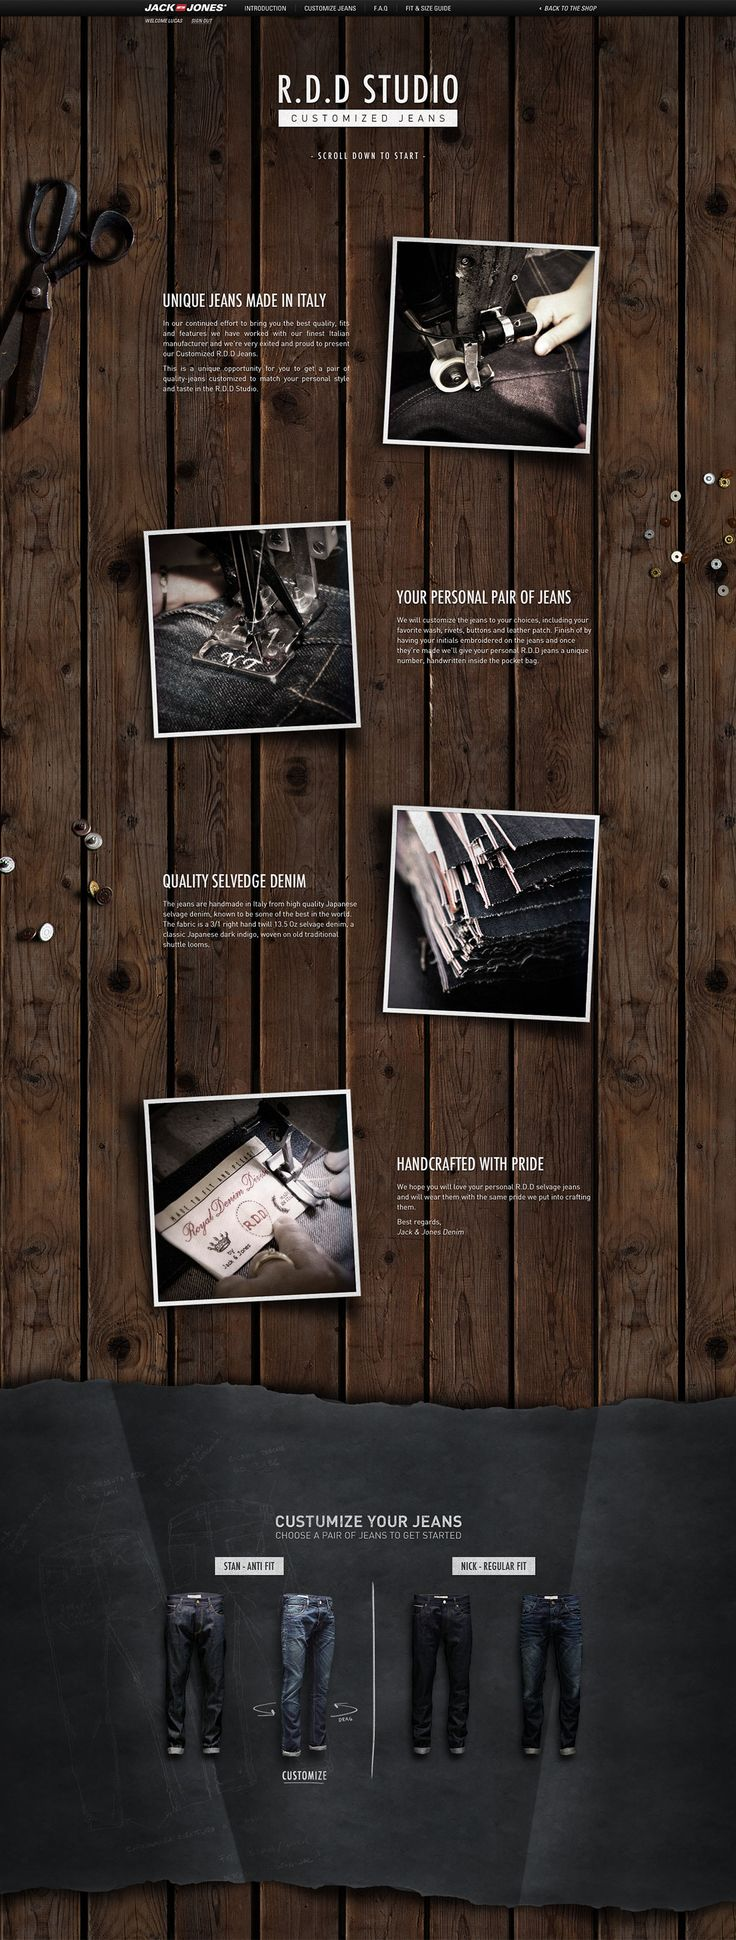 Webdesign - one page website - jean - mode - fashion